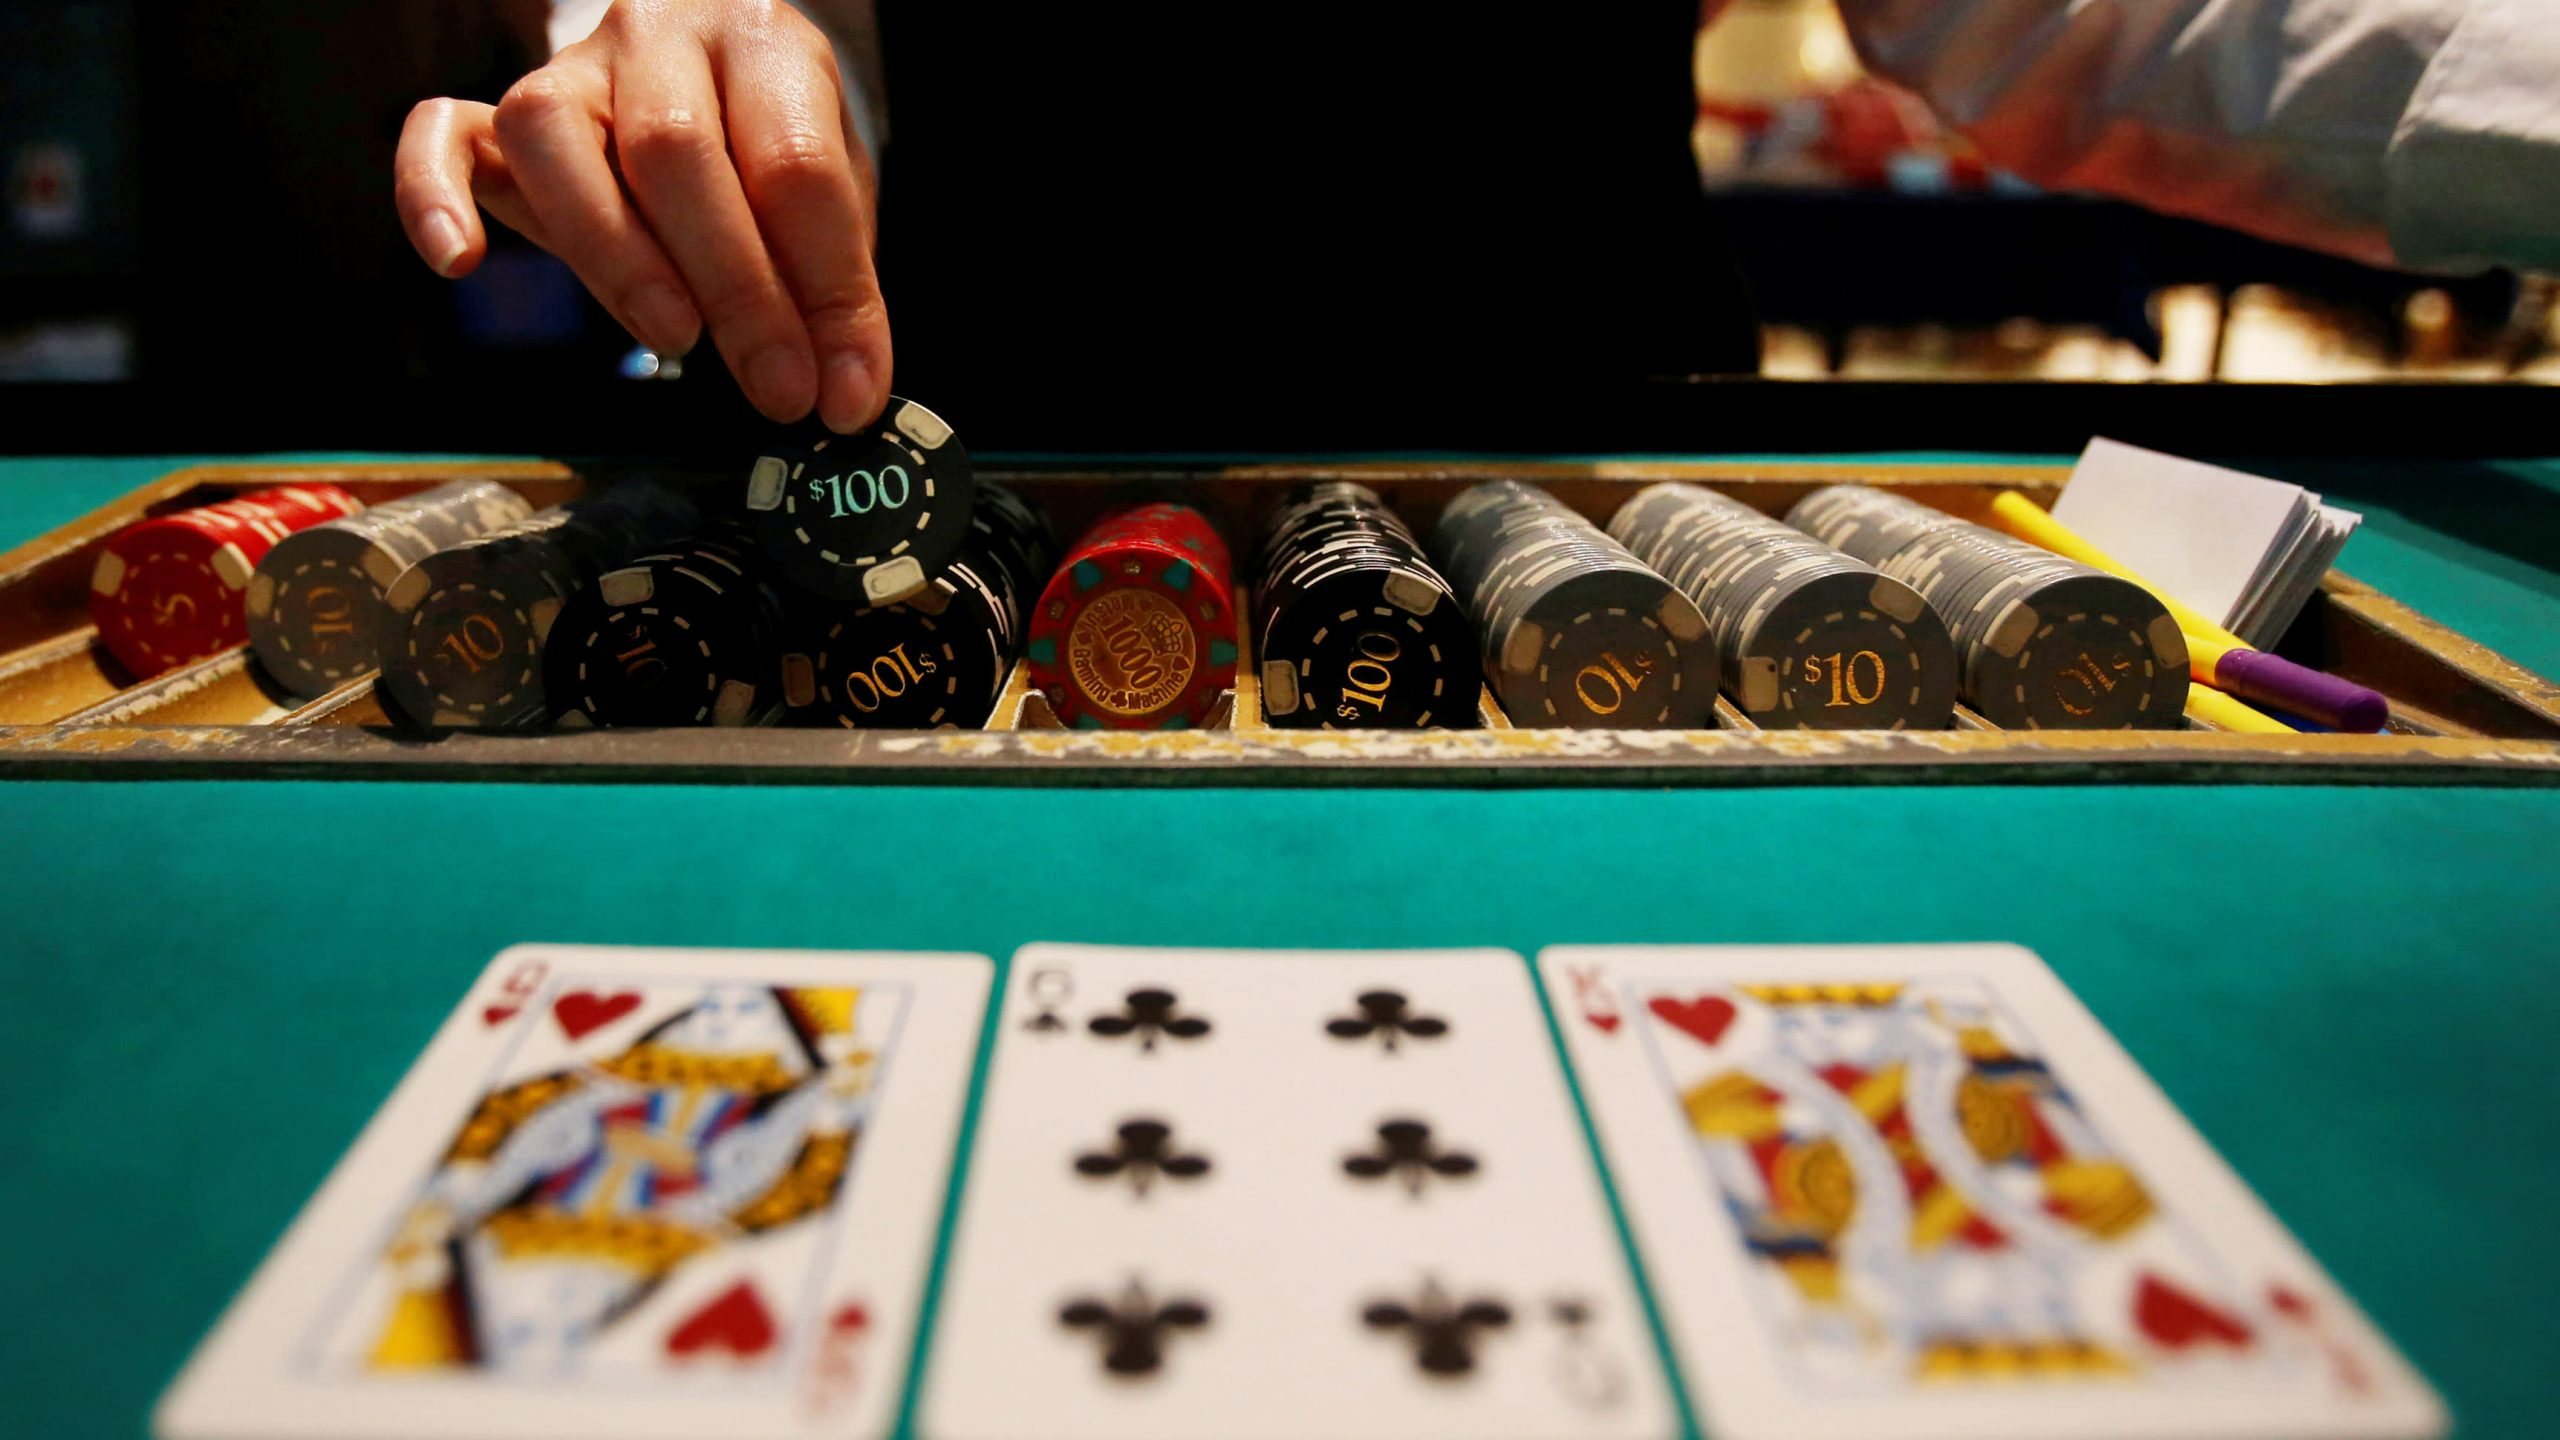 This Is A Quick Method To Resolve A Concern With Gambling